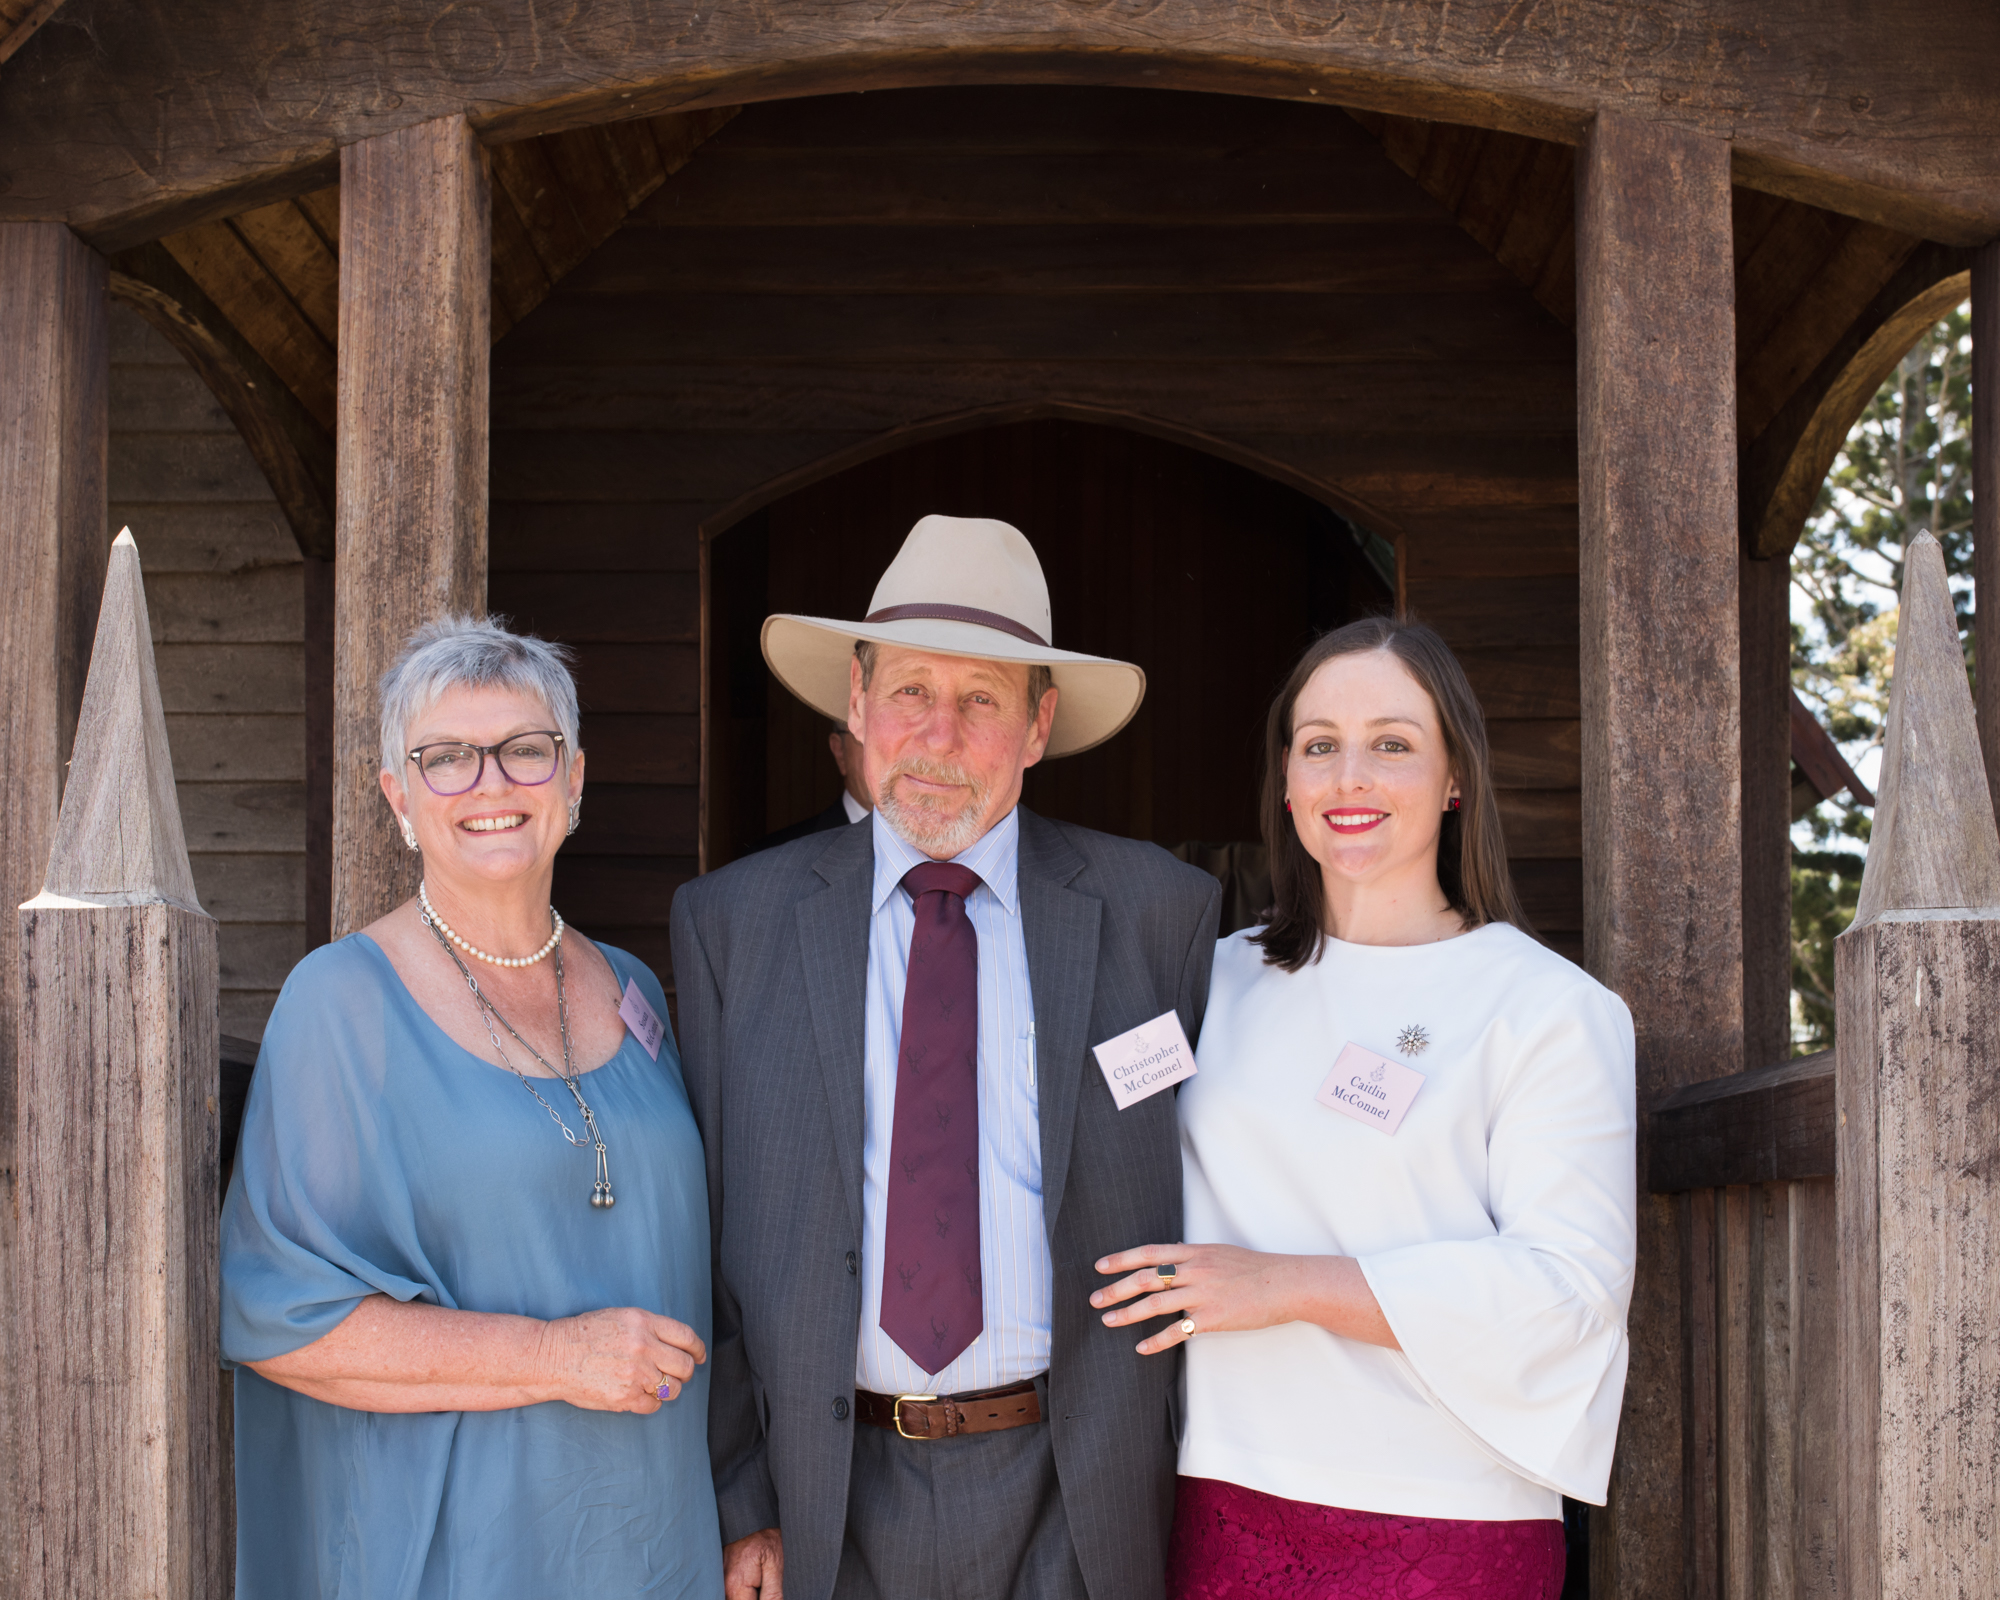 Susan, Christopher & Caitlin McConnel on the steps of the Victoria Chapel at Cressbrook following the Service of Thanksgiving held in celebration of the McConnel family's 175th anniversary at Cressbrook(c) Sarah Chandler Photography